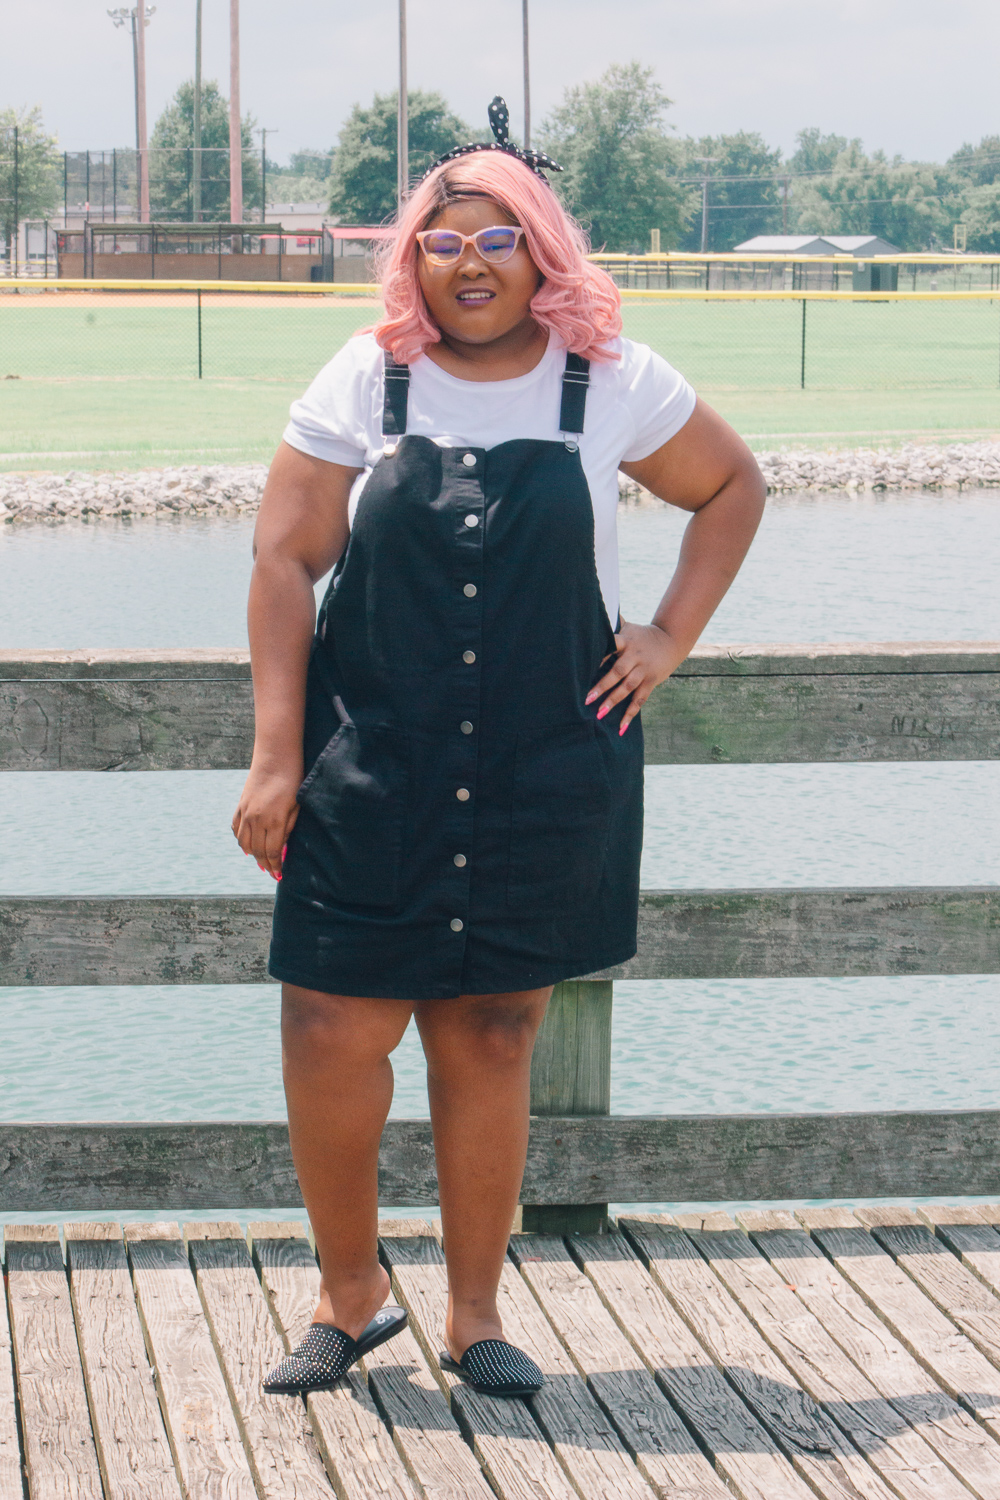 Styling SO in the park. Amanda is wearing a black polka dot headband, a white shirt, a black pinafore, and black mules.